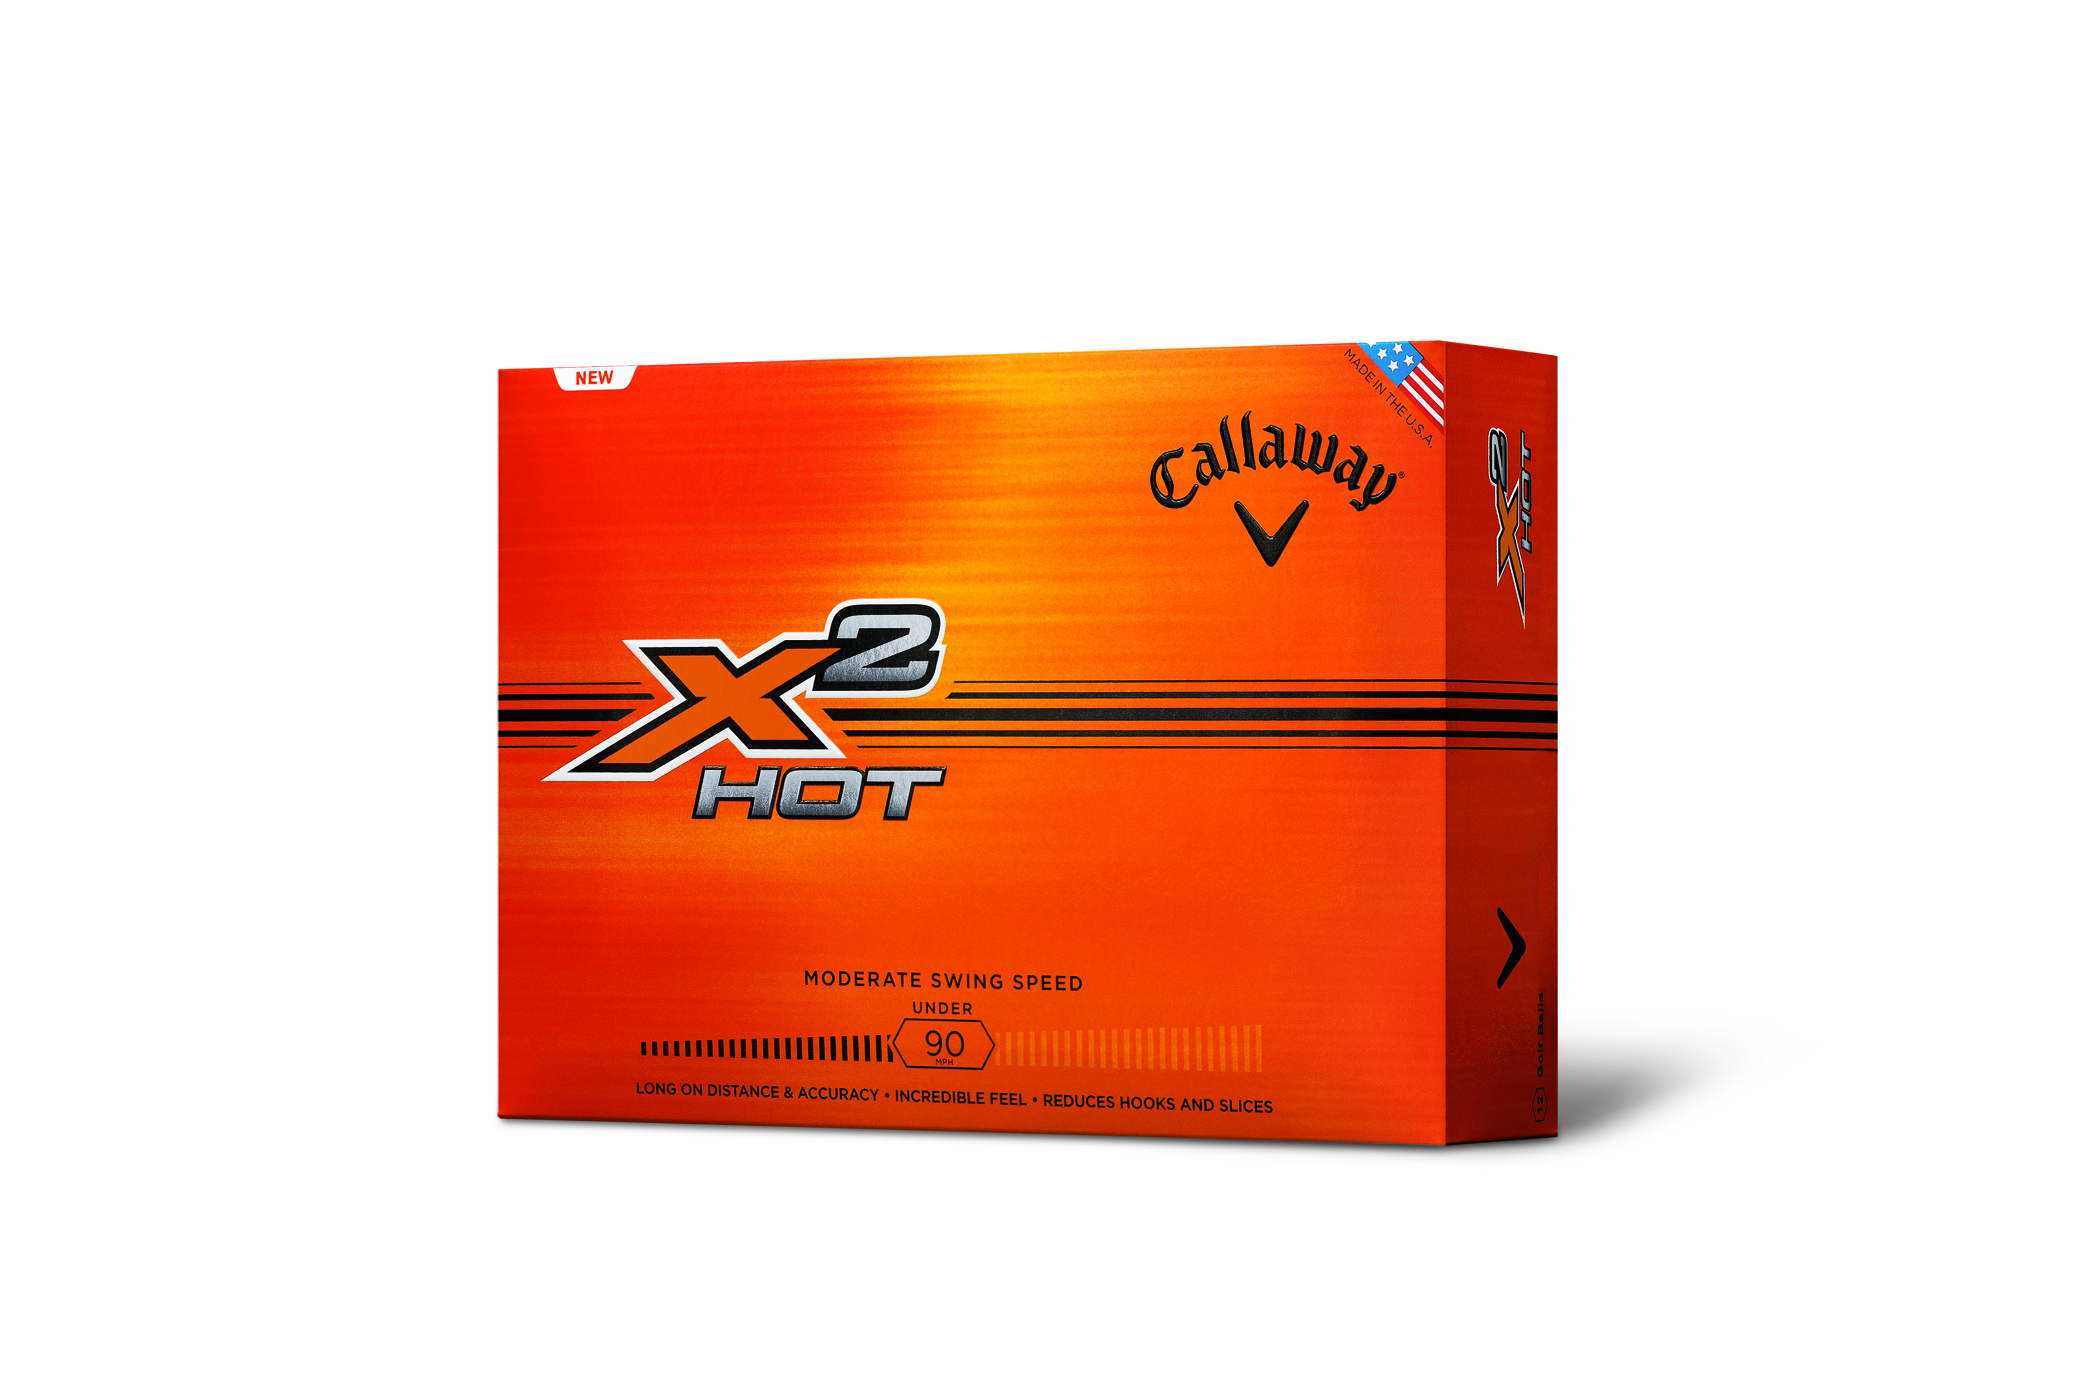 Callaway X2 Hot and Supersoft balls